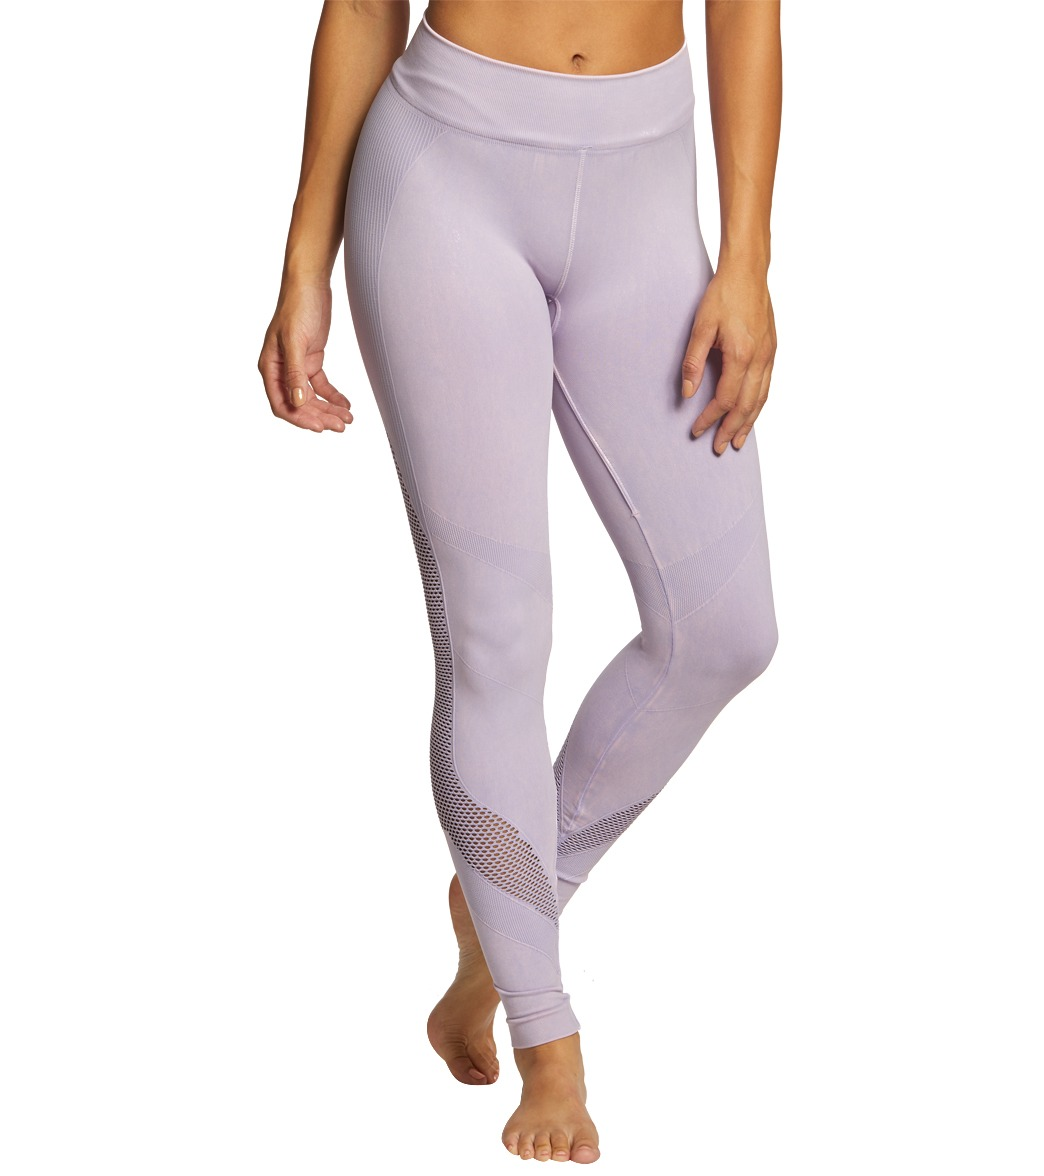 697d25637d NUX Network Mneral Wash Seamless Yoga Leggings at YogaOutlet.com ...